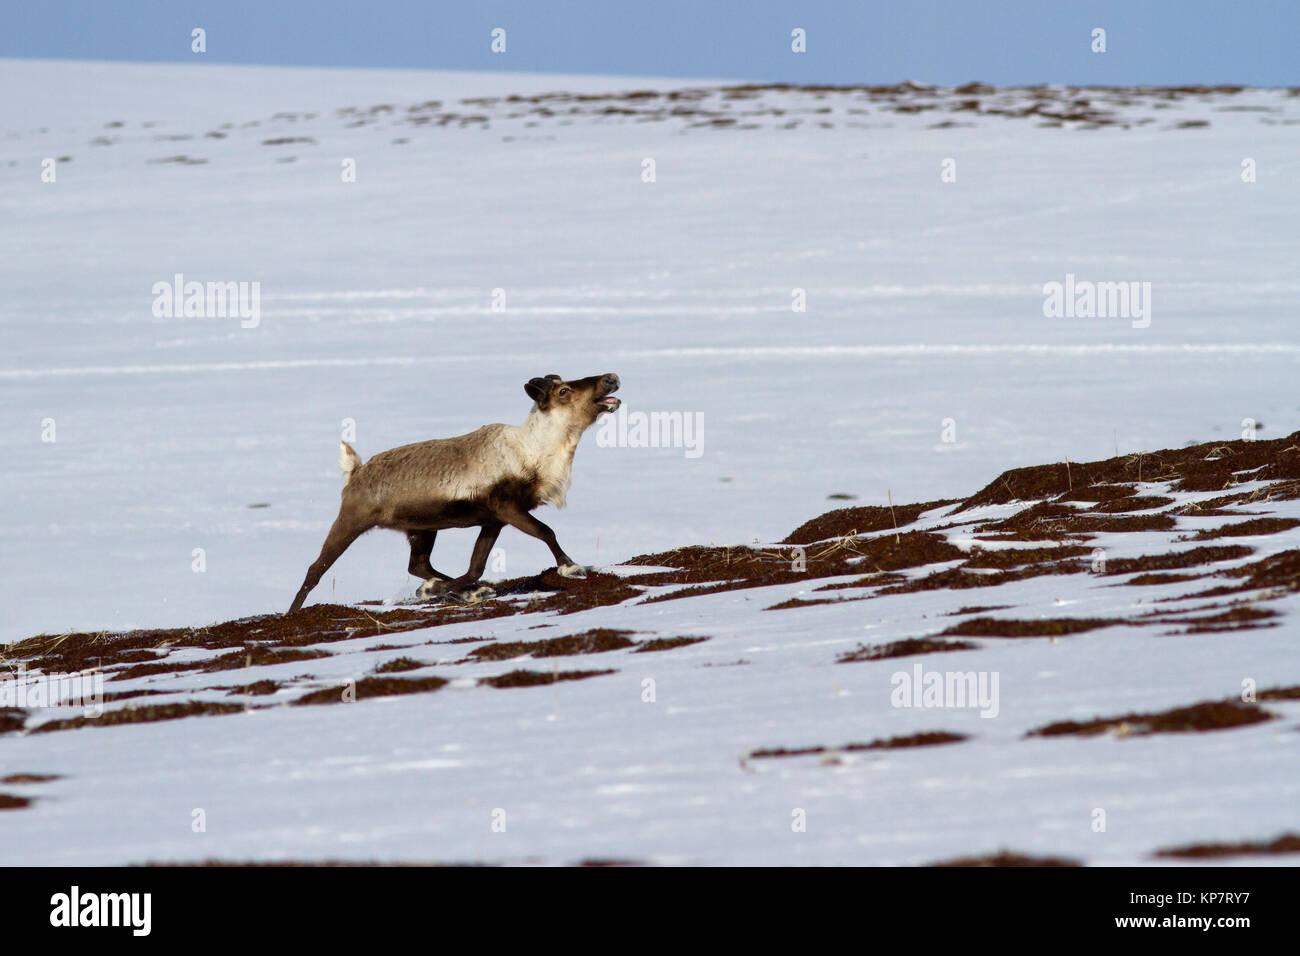 reindeer running along the slope of the hills in the tundra on a springy overcast day - Stock Image